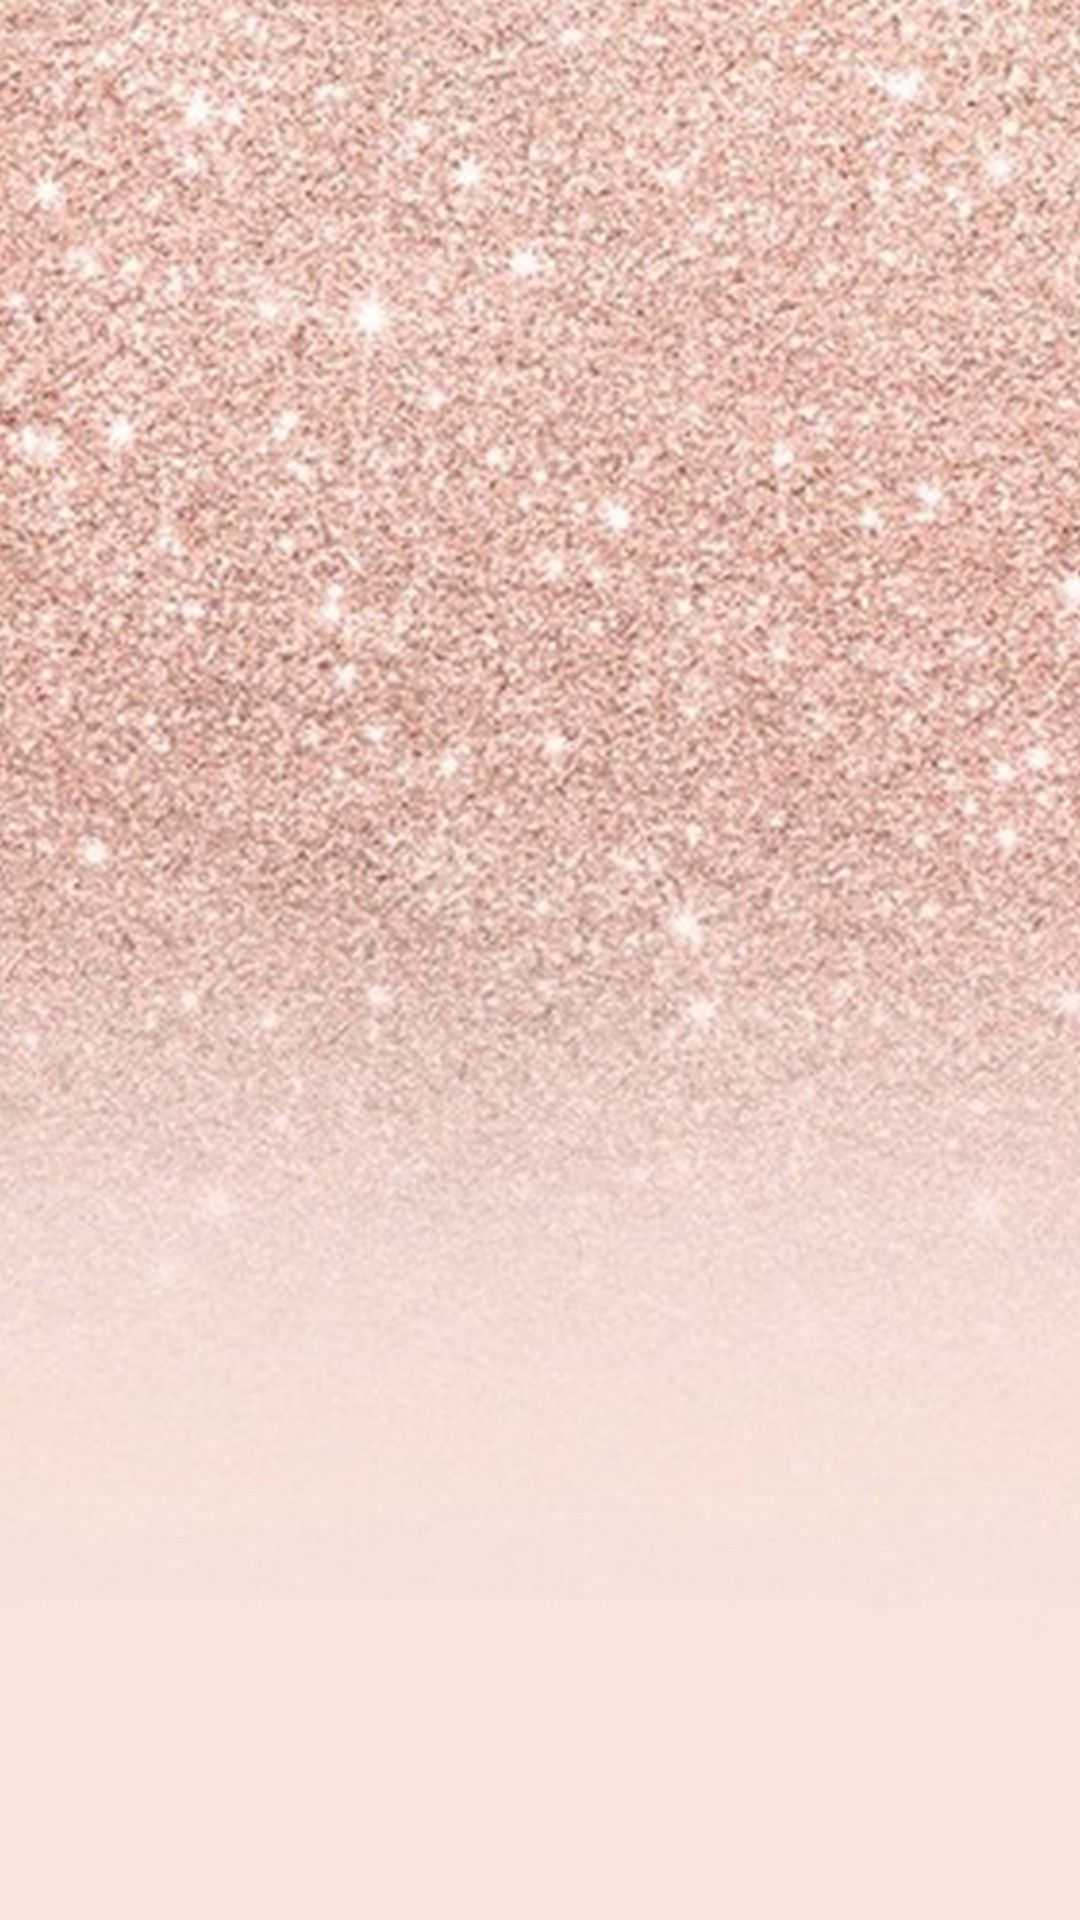 PhoneWallpaper Wallpaper Rose Gold Glitter Android Check